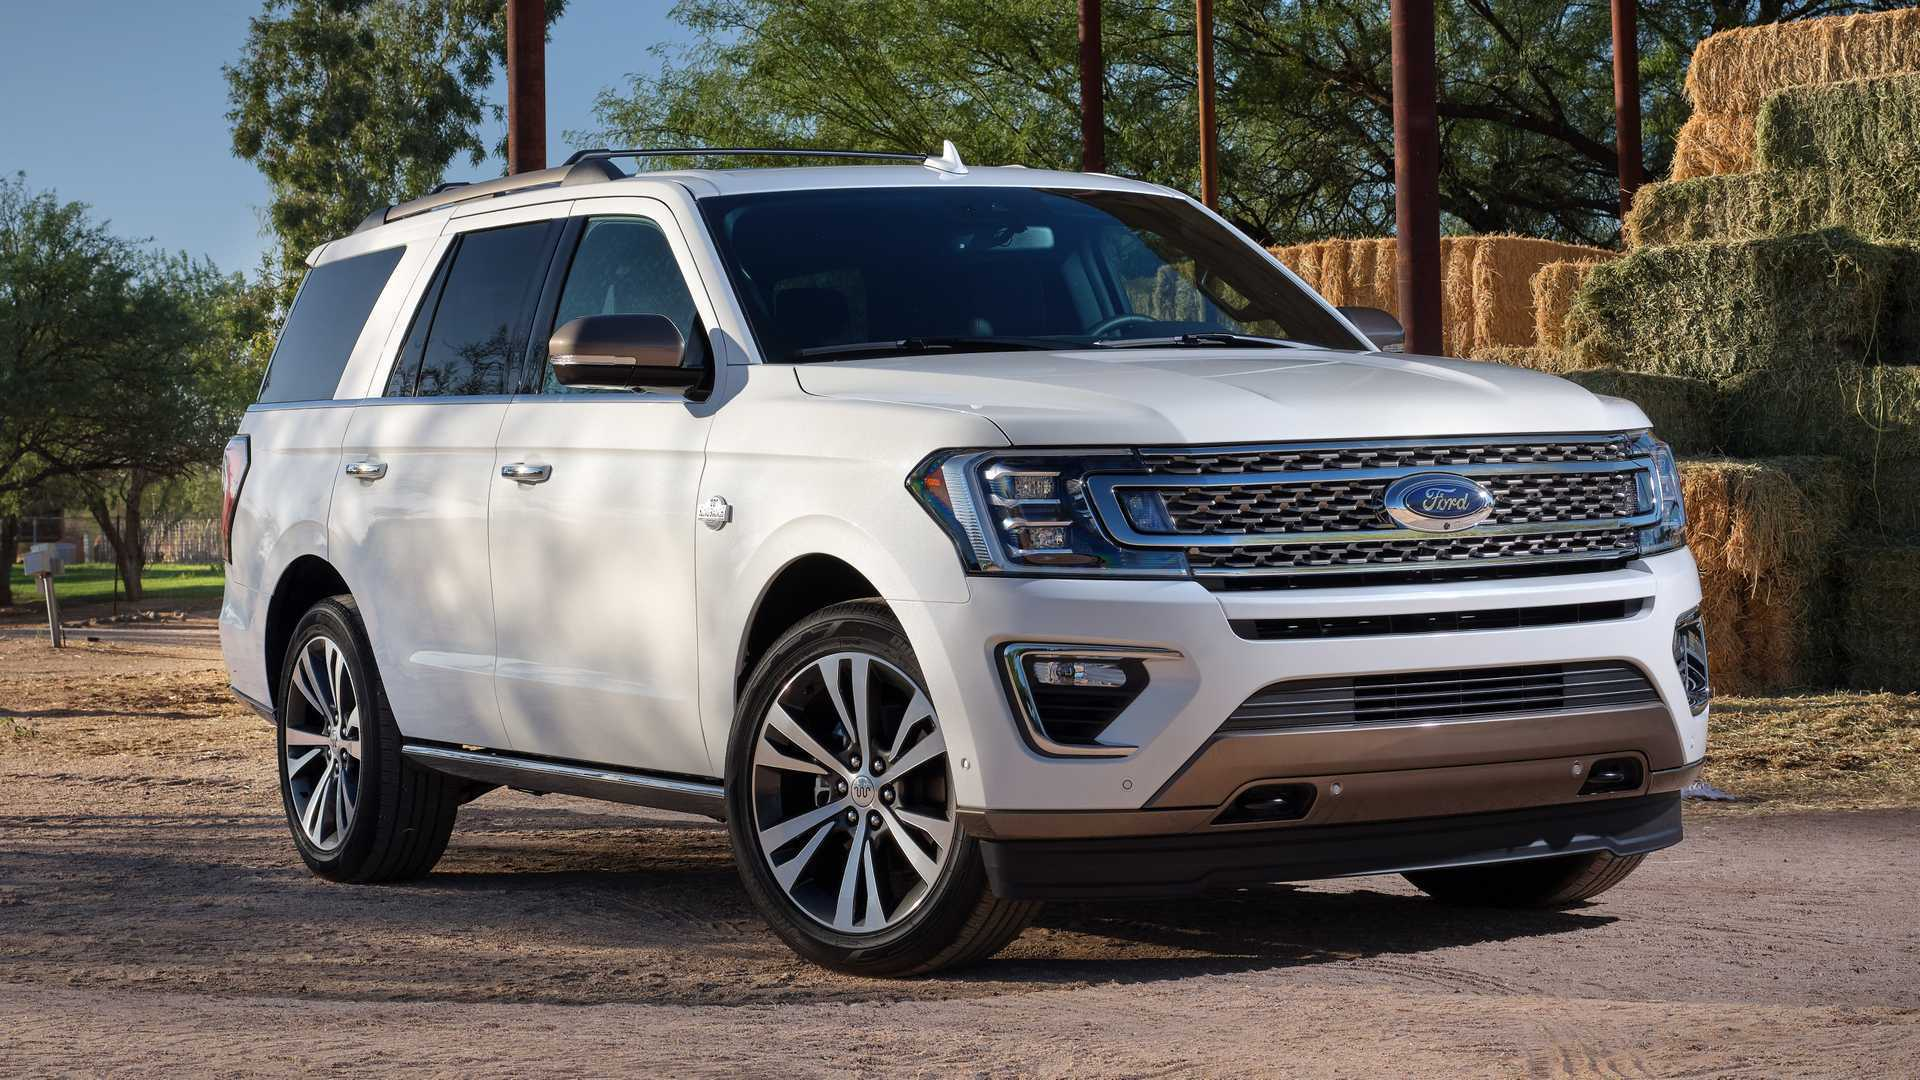 Ford Expedition и Lincoln Navigator тратят по 12,3 л на 100 км